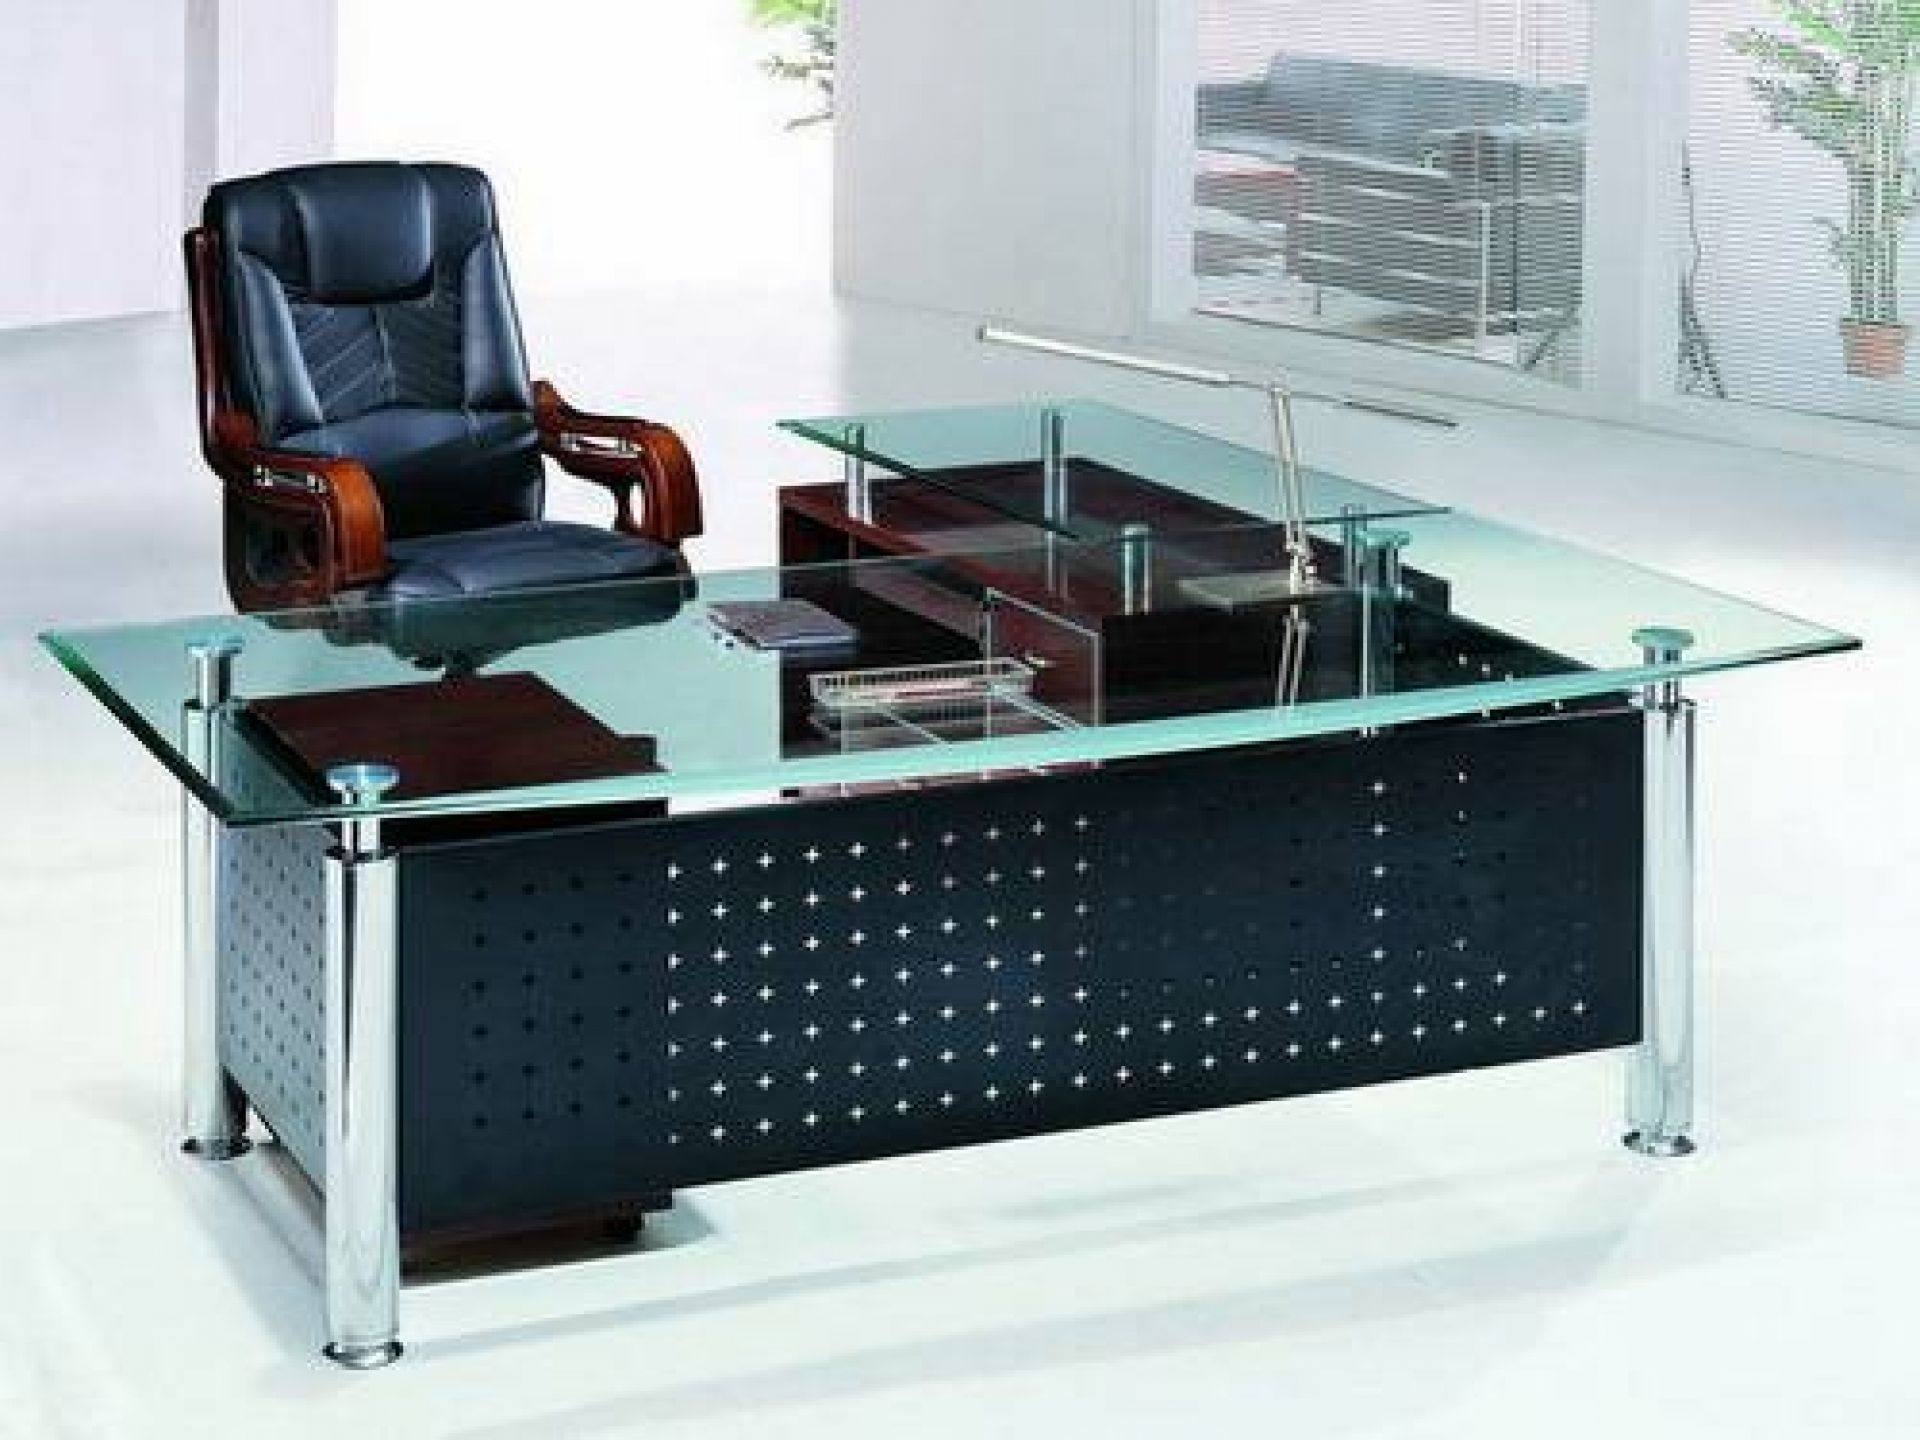 Stylish Black Leather Office Chair Added Contemporary Glass Top Desk In Small Of Added Office Table Design Modern Office Desk Home Office Design